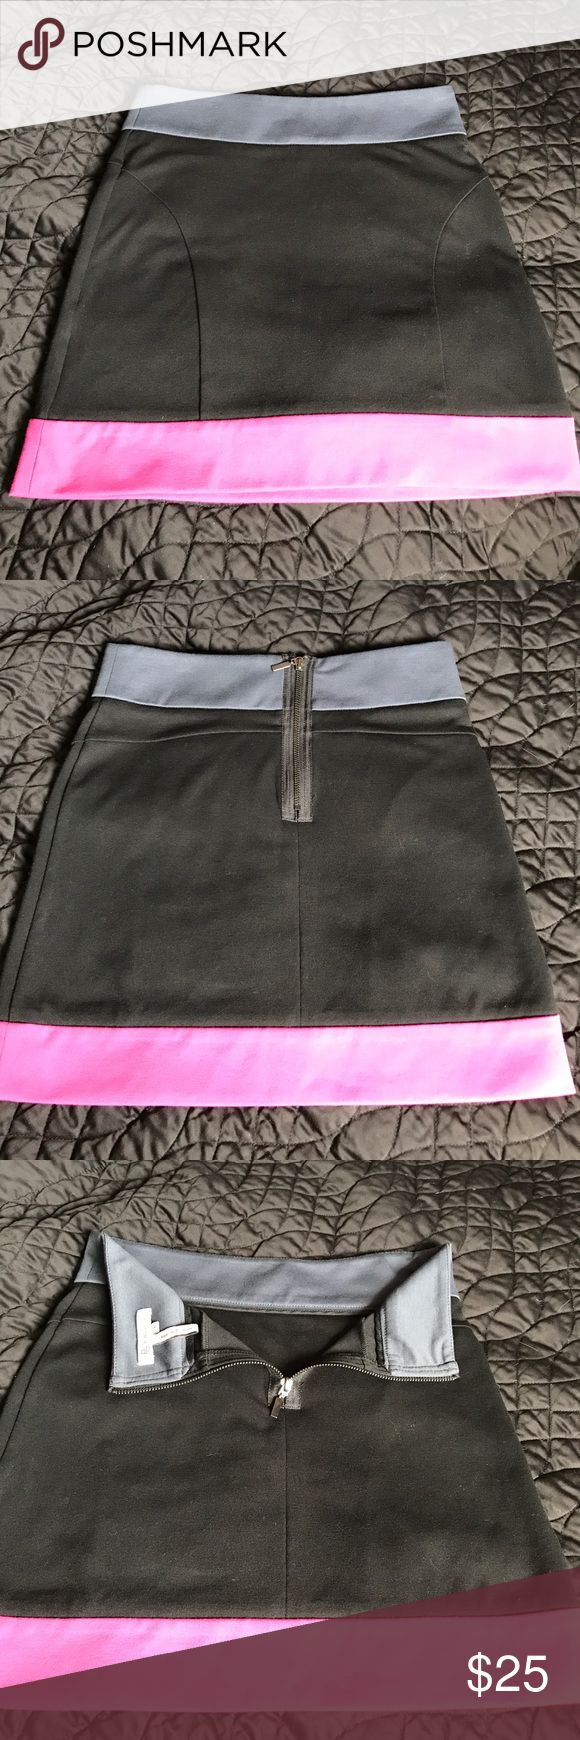 EUC BCBG COLOR BLOCK SKIRT Very gently worn multi colored skirt, a zipper on the back. No stains, rips, tears or frays. Size 8 but fits like a 6 BCBGeneration Skirts Midi